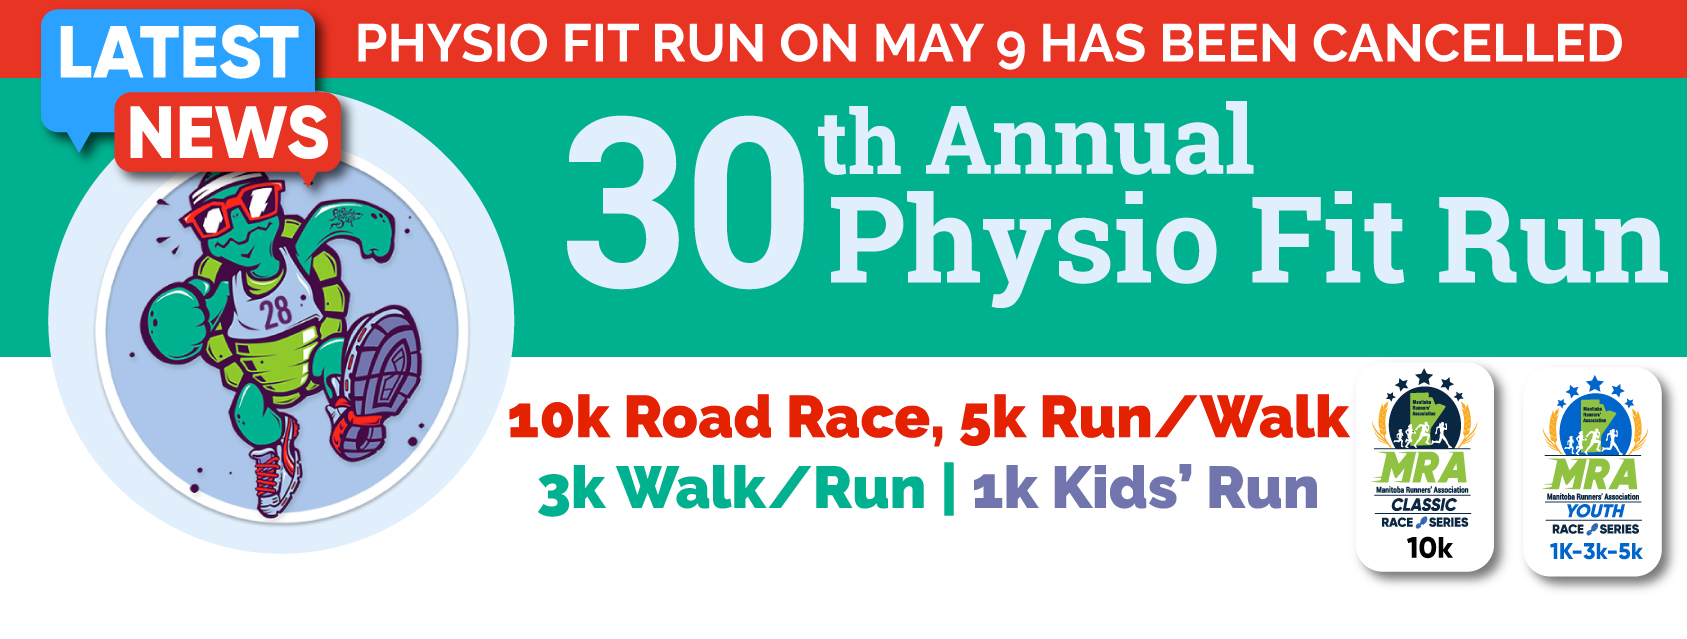 30th Annual Physio Fit Run - **CANCELLED**